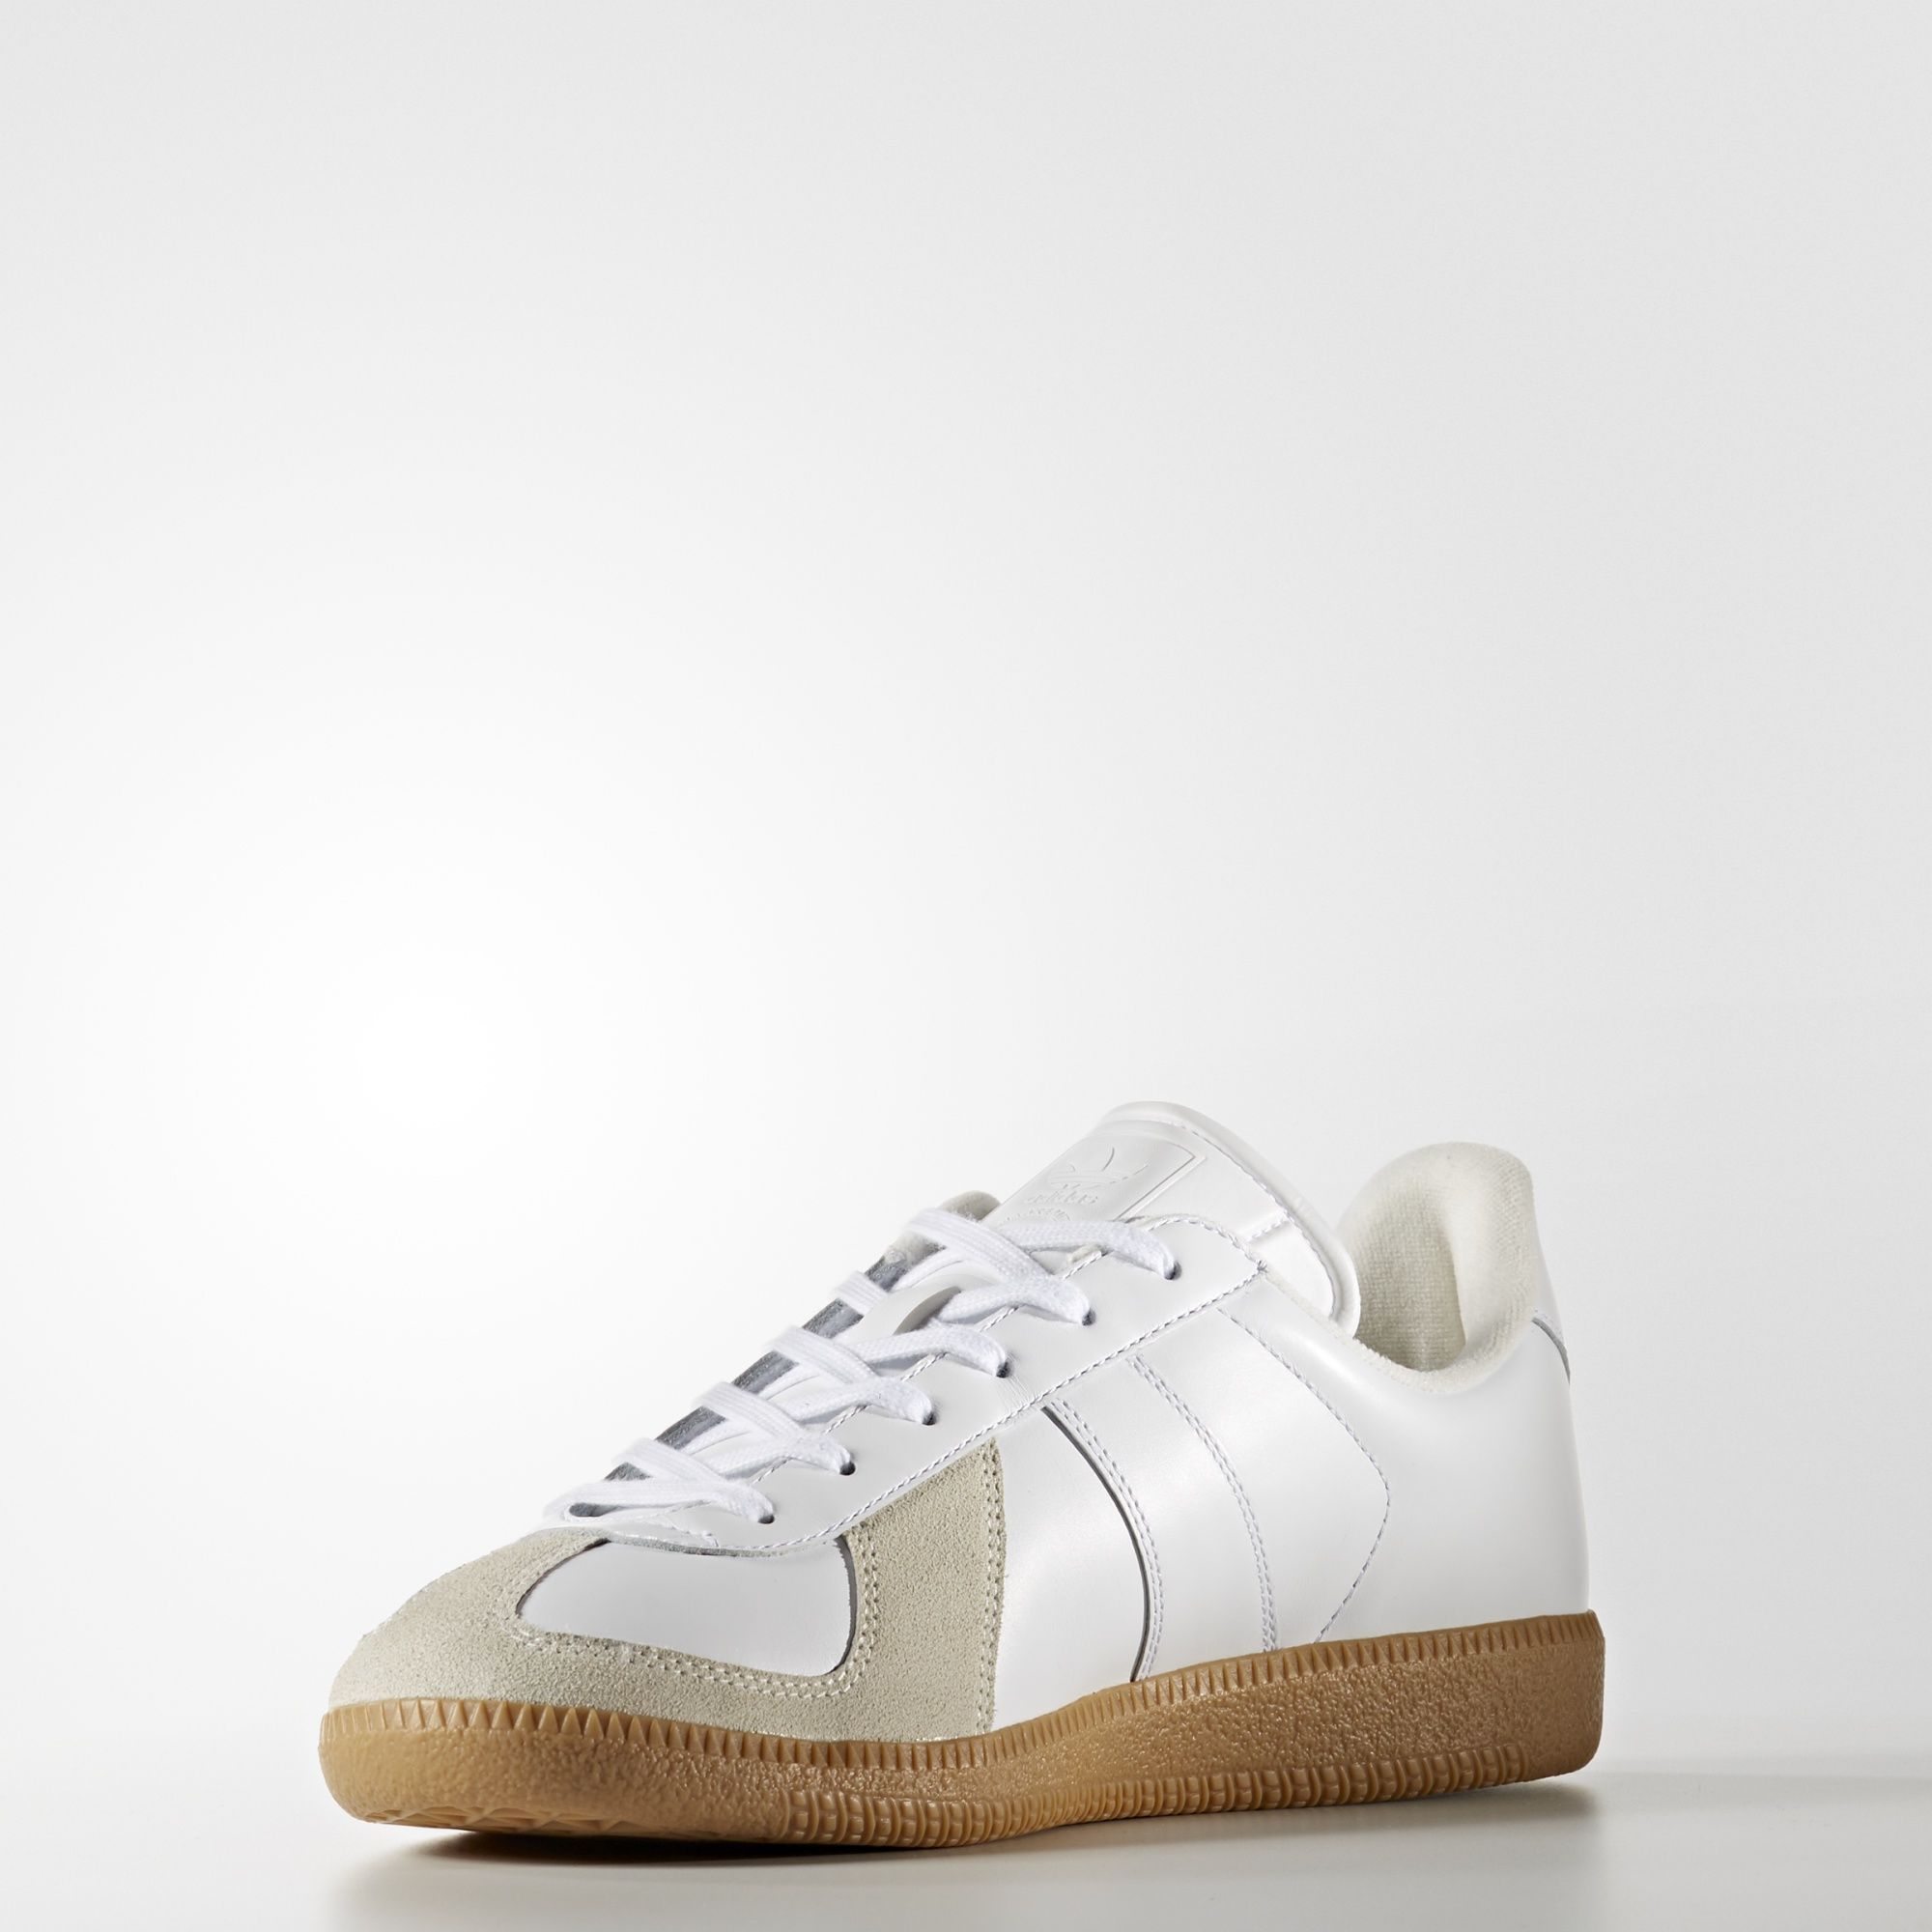 Muy enojado tanto Pulido  adidas - BW Army Shoes | An authentic replica of a vintage German army  indoor trainer, these shoes bring back a classic look. The upper is made of  leather and f…